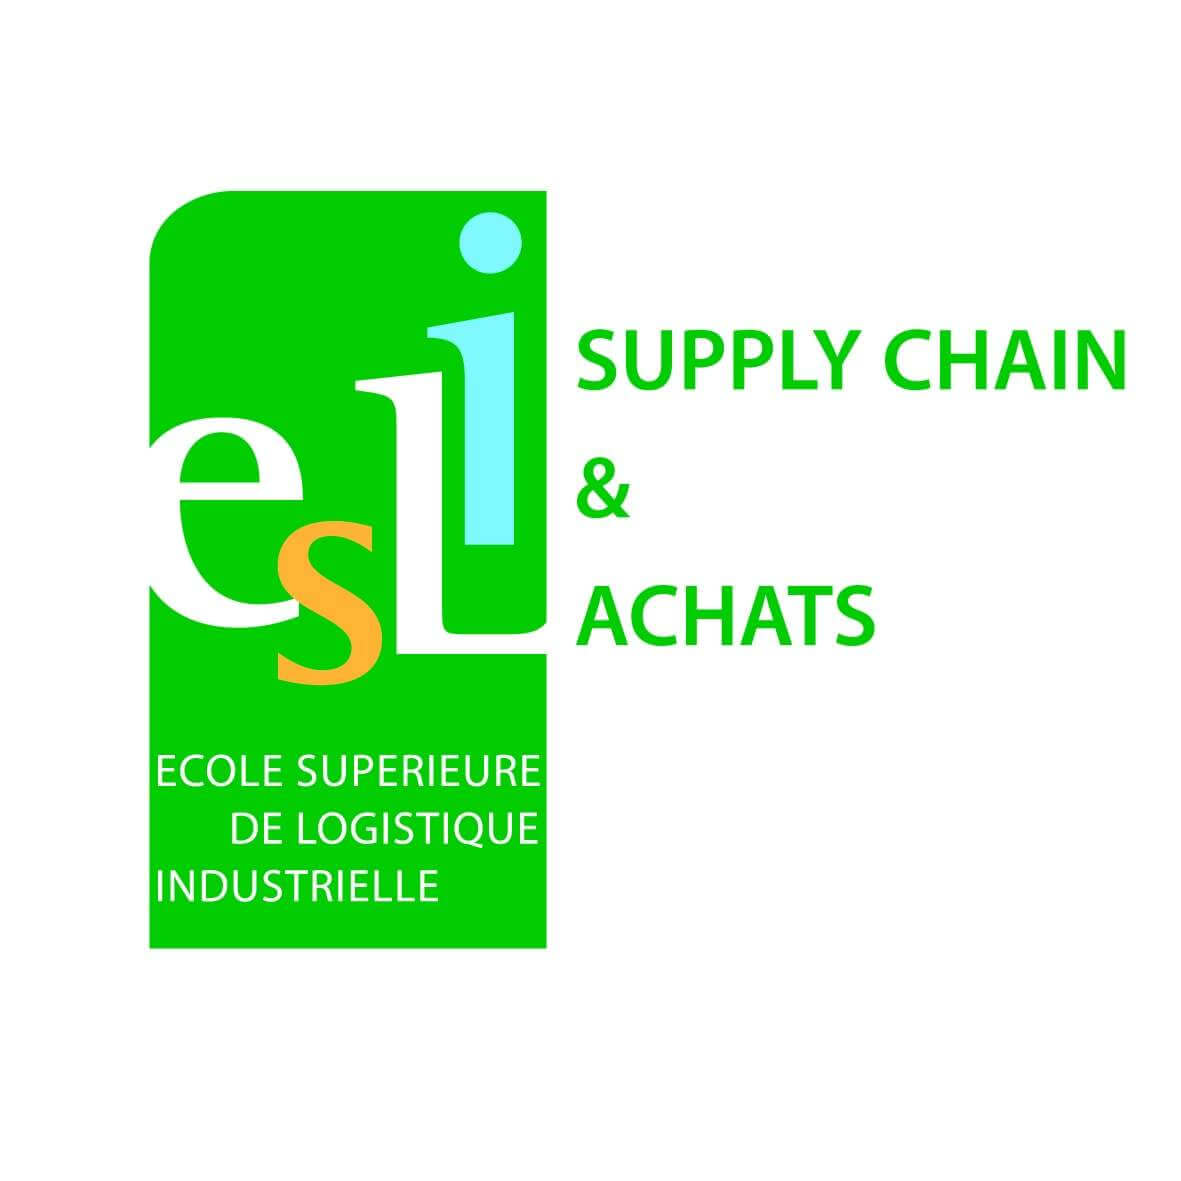 Dissertation On Supply Chain Management